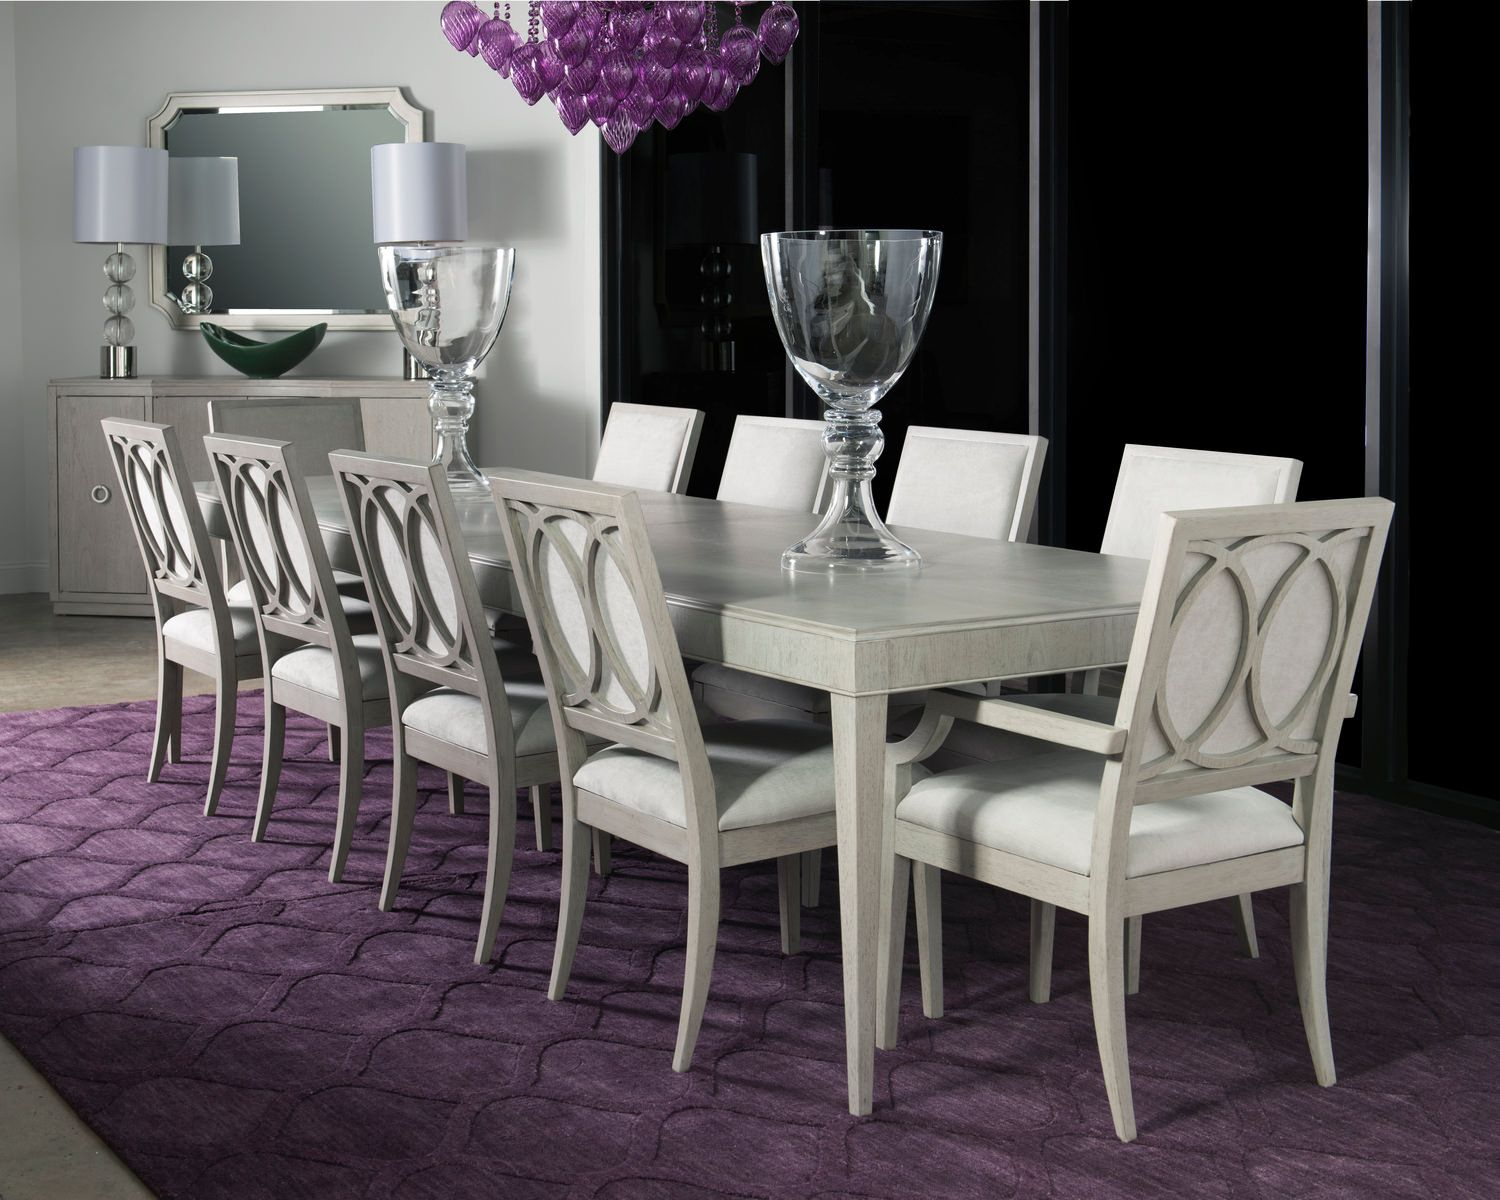 Sensational Cinema Leg Table With 4 Side Chairs Best Spring Brunches Bralicious Painted Fabric Chair Ideas Braliciousco